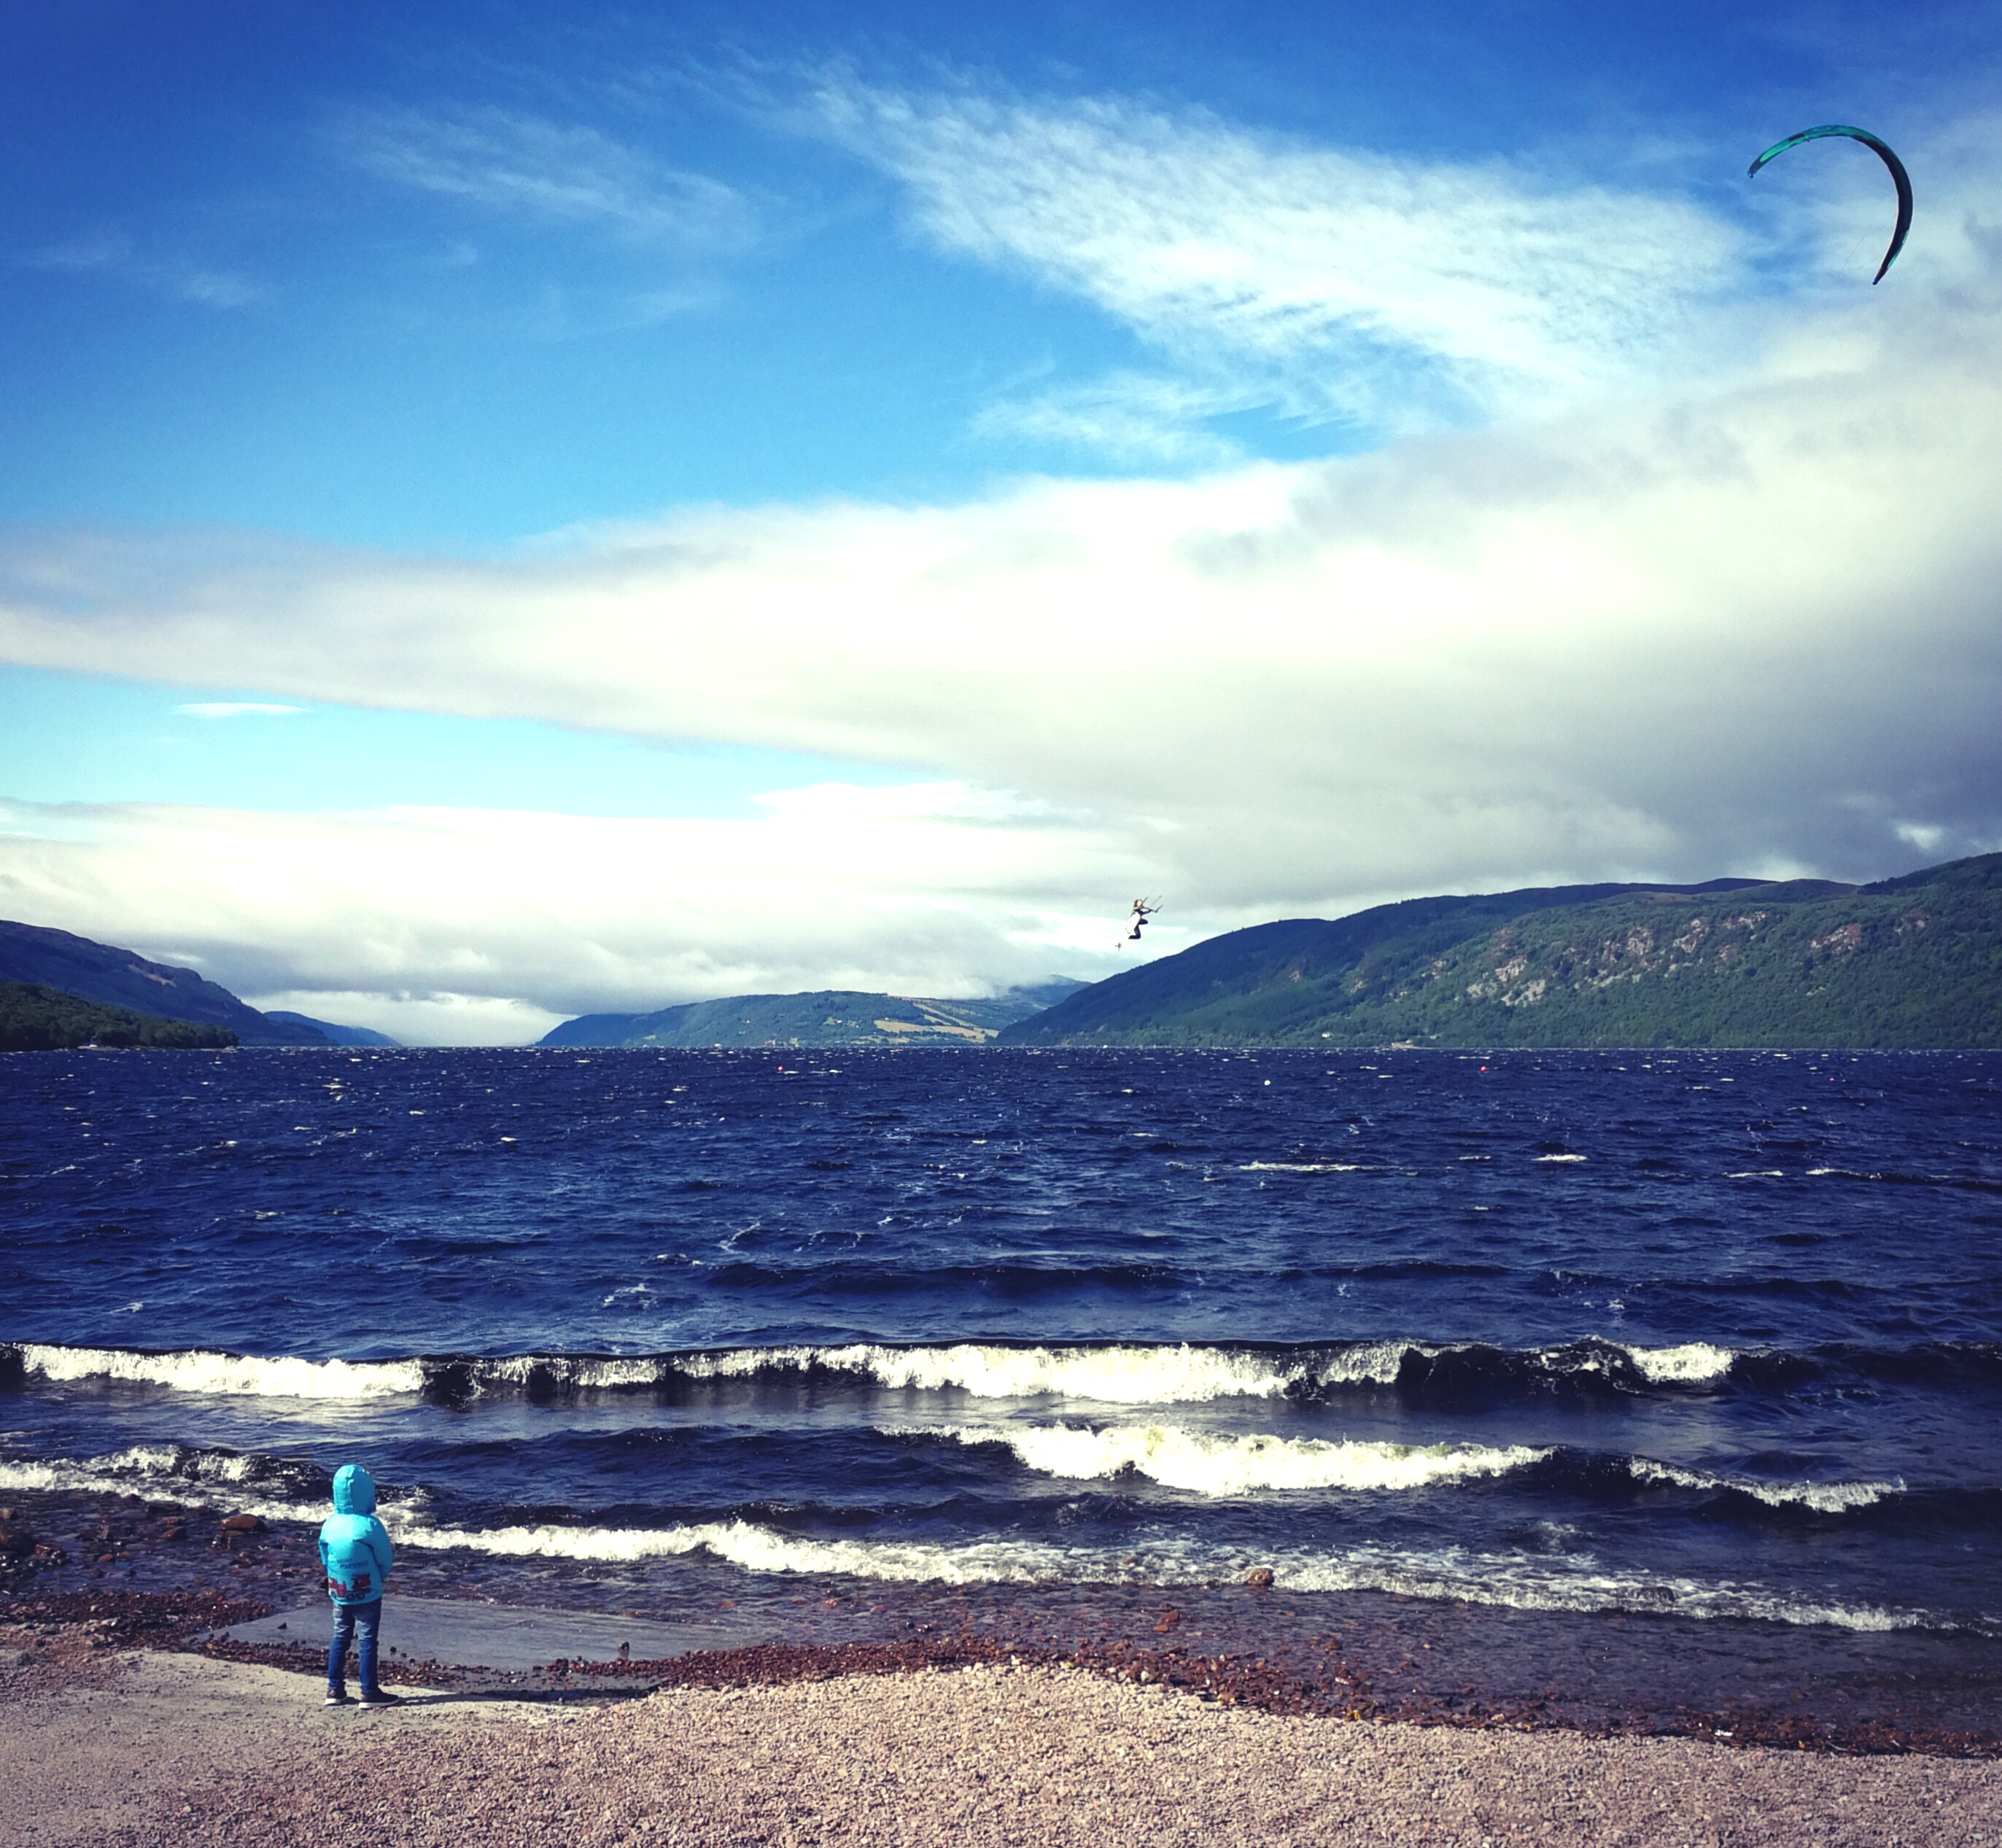 The future of kite surfing, Loch Ness style.